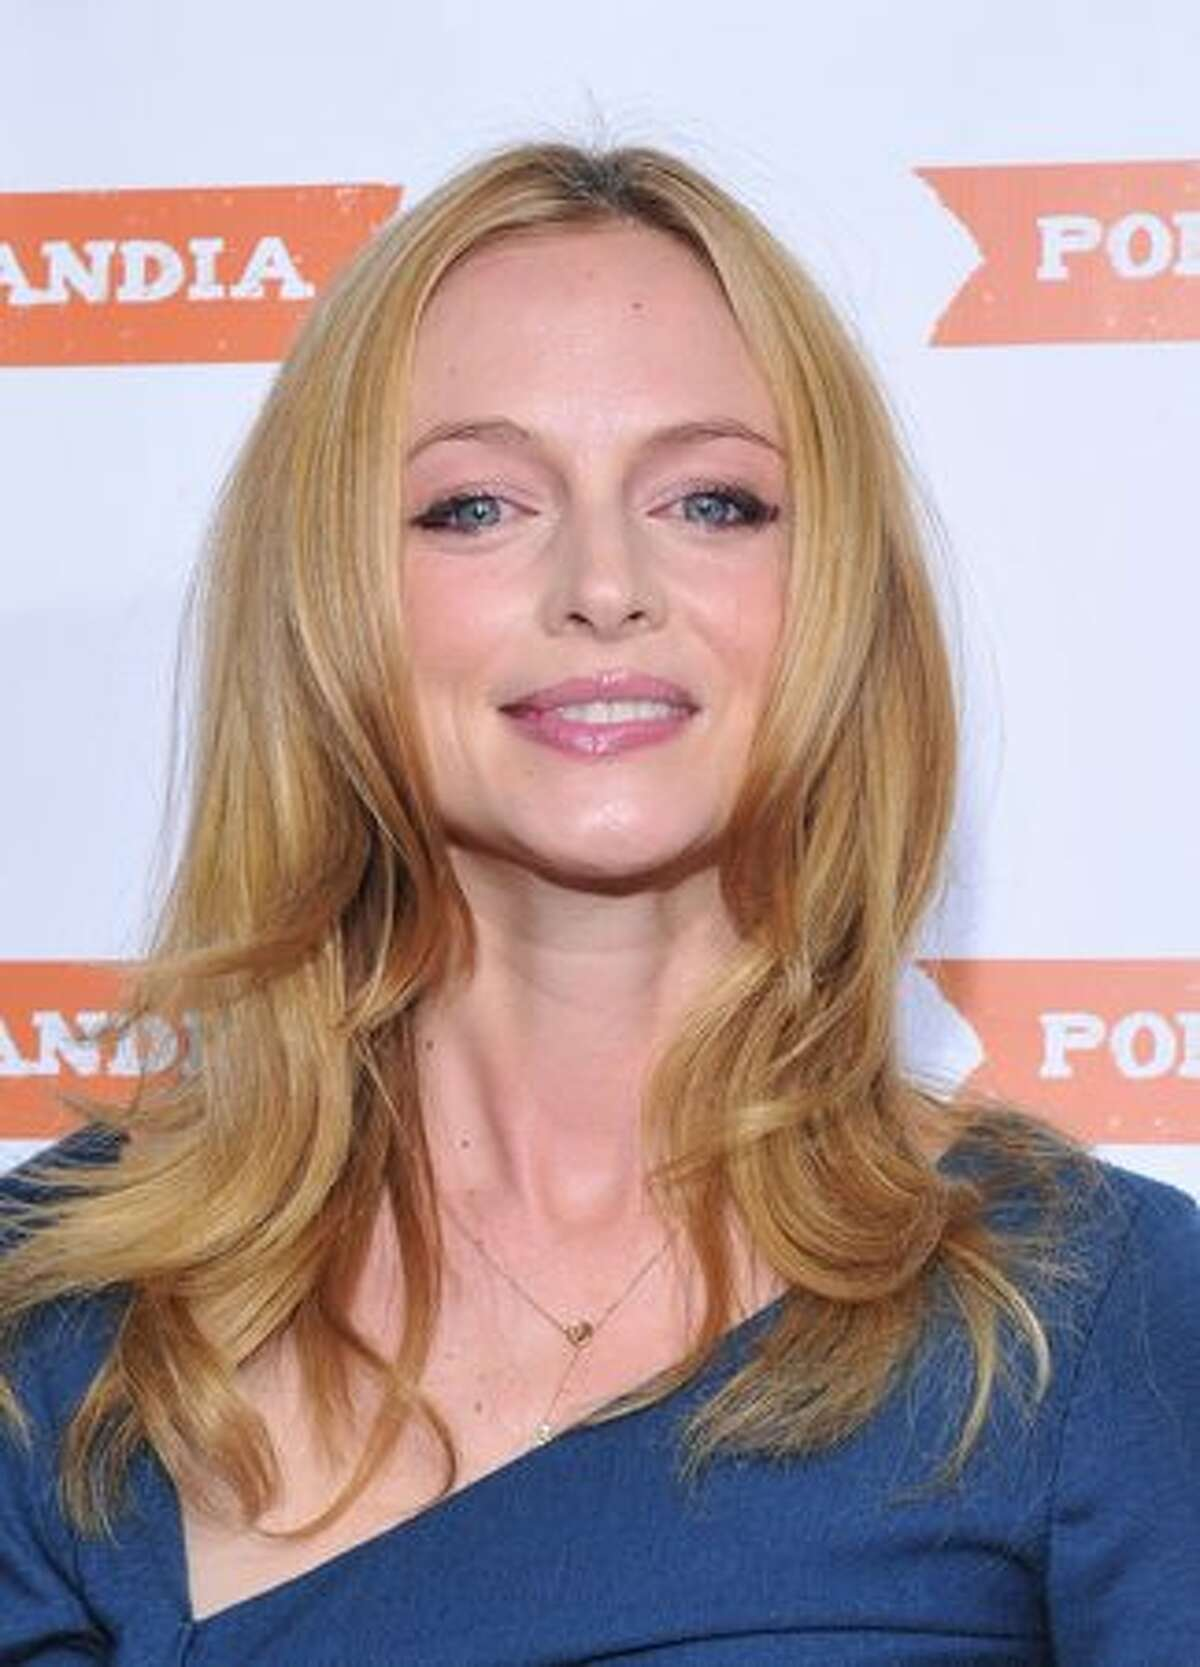 """Actress Heather Graham attends a screening of """"Portlandia"""" at The Edison Ballroom in New York City."""